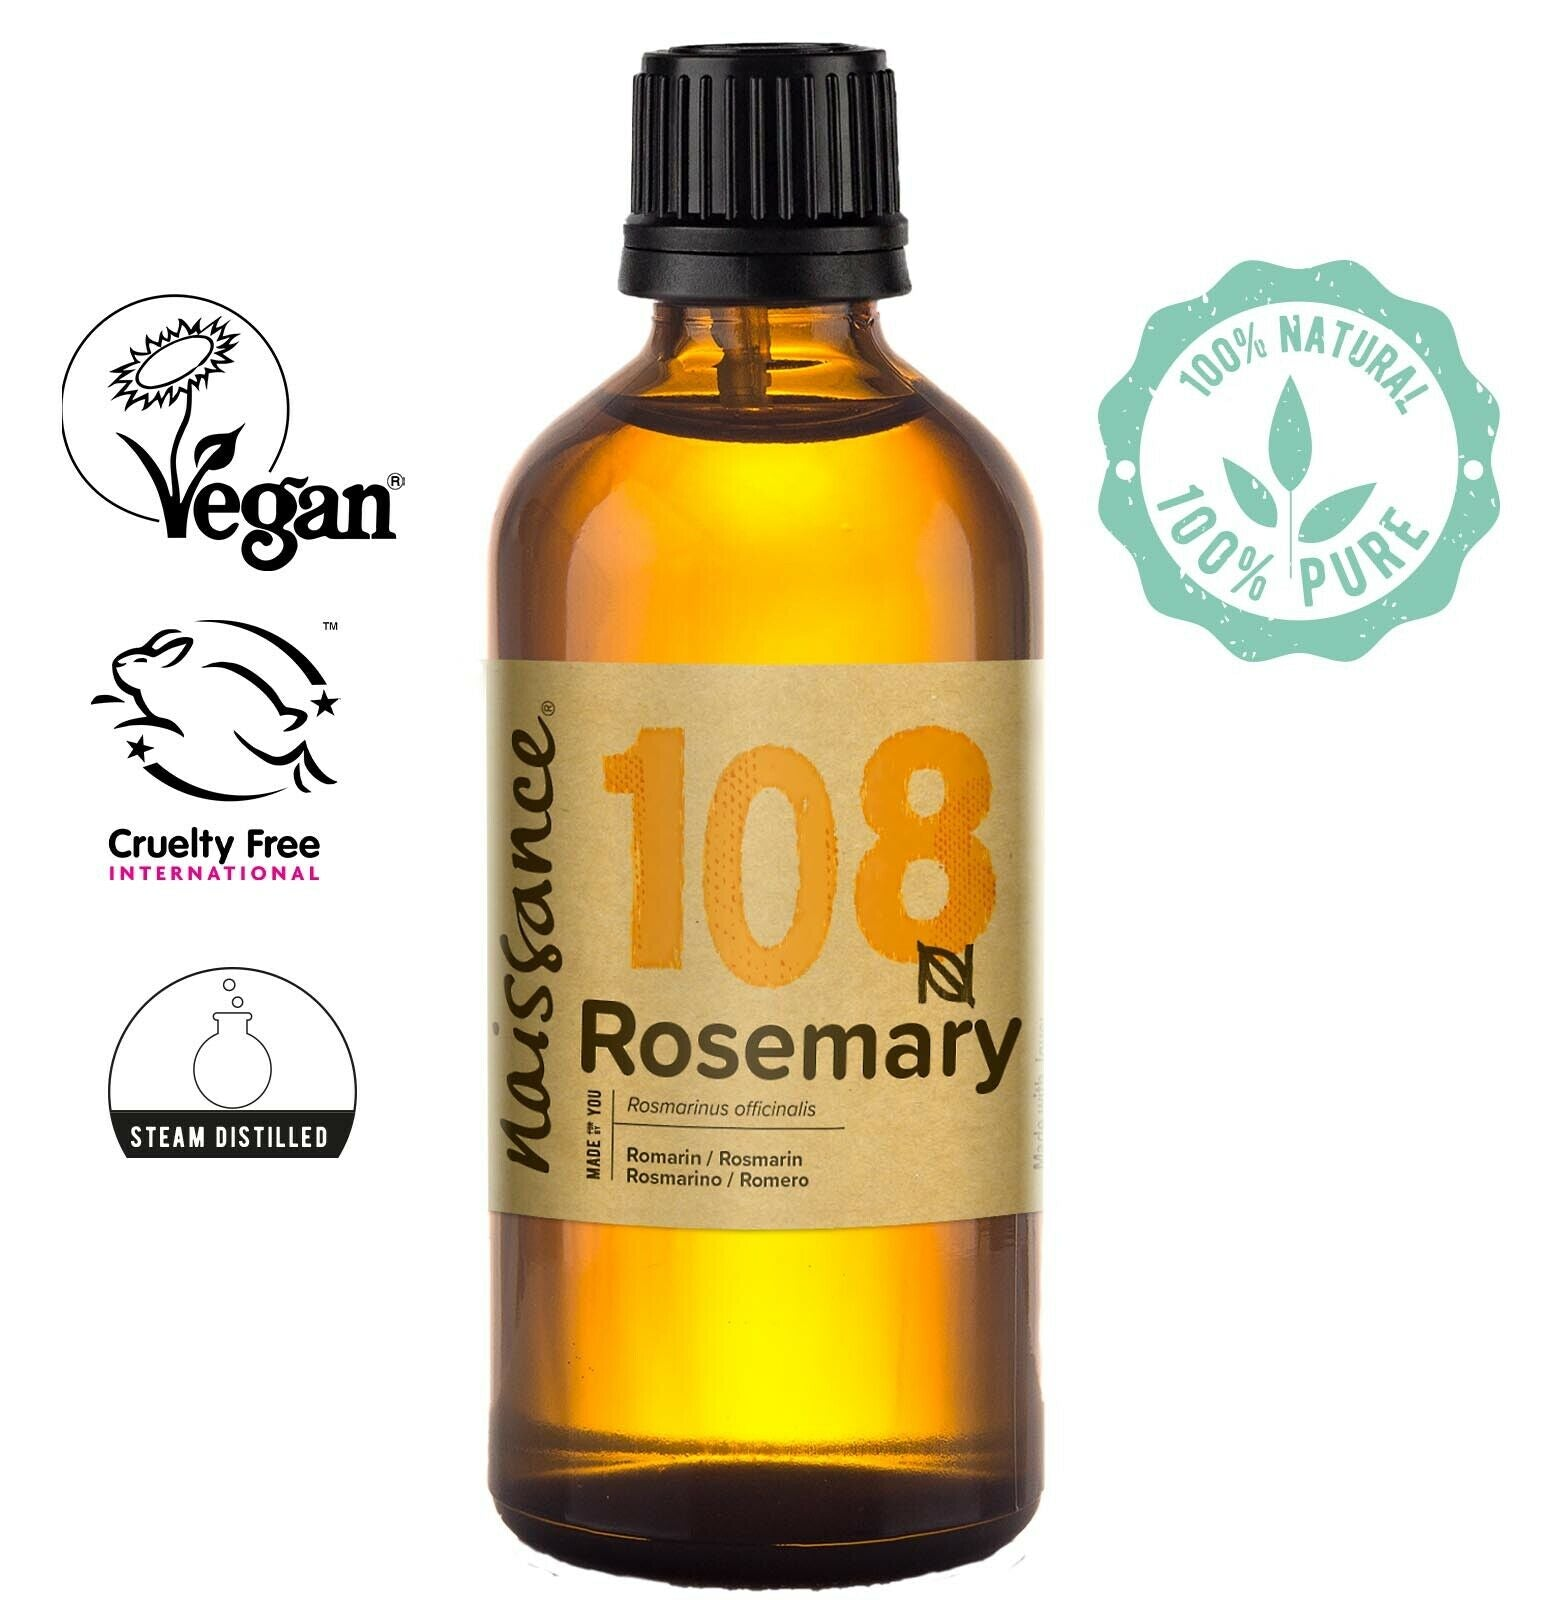 Naissance Rosemary Essential Oil 100ml Use in Aromatherapy, Massage Blend